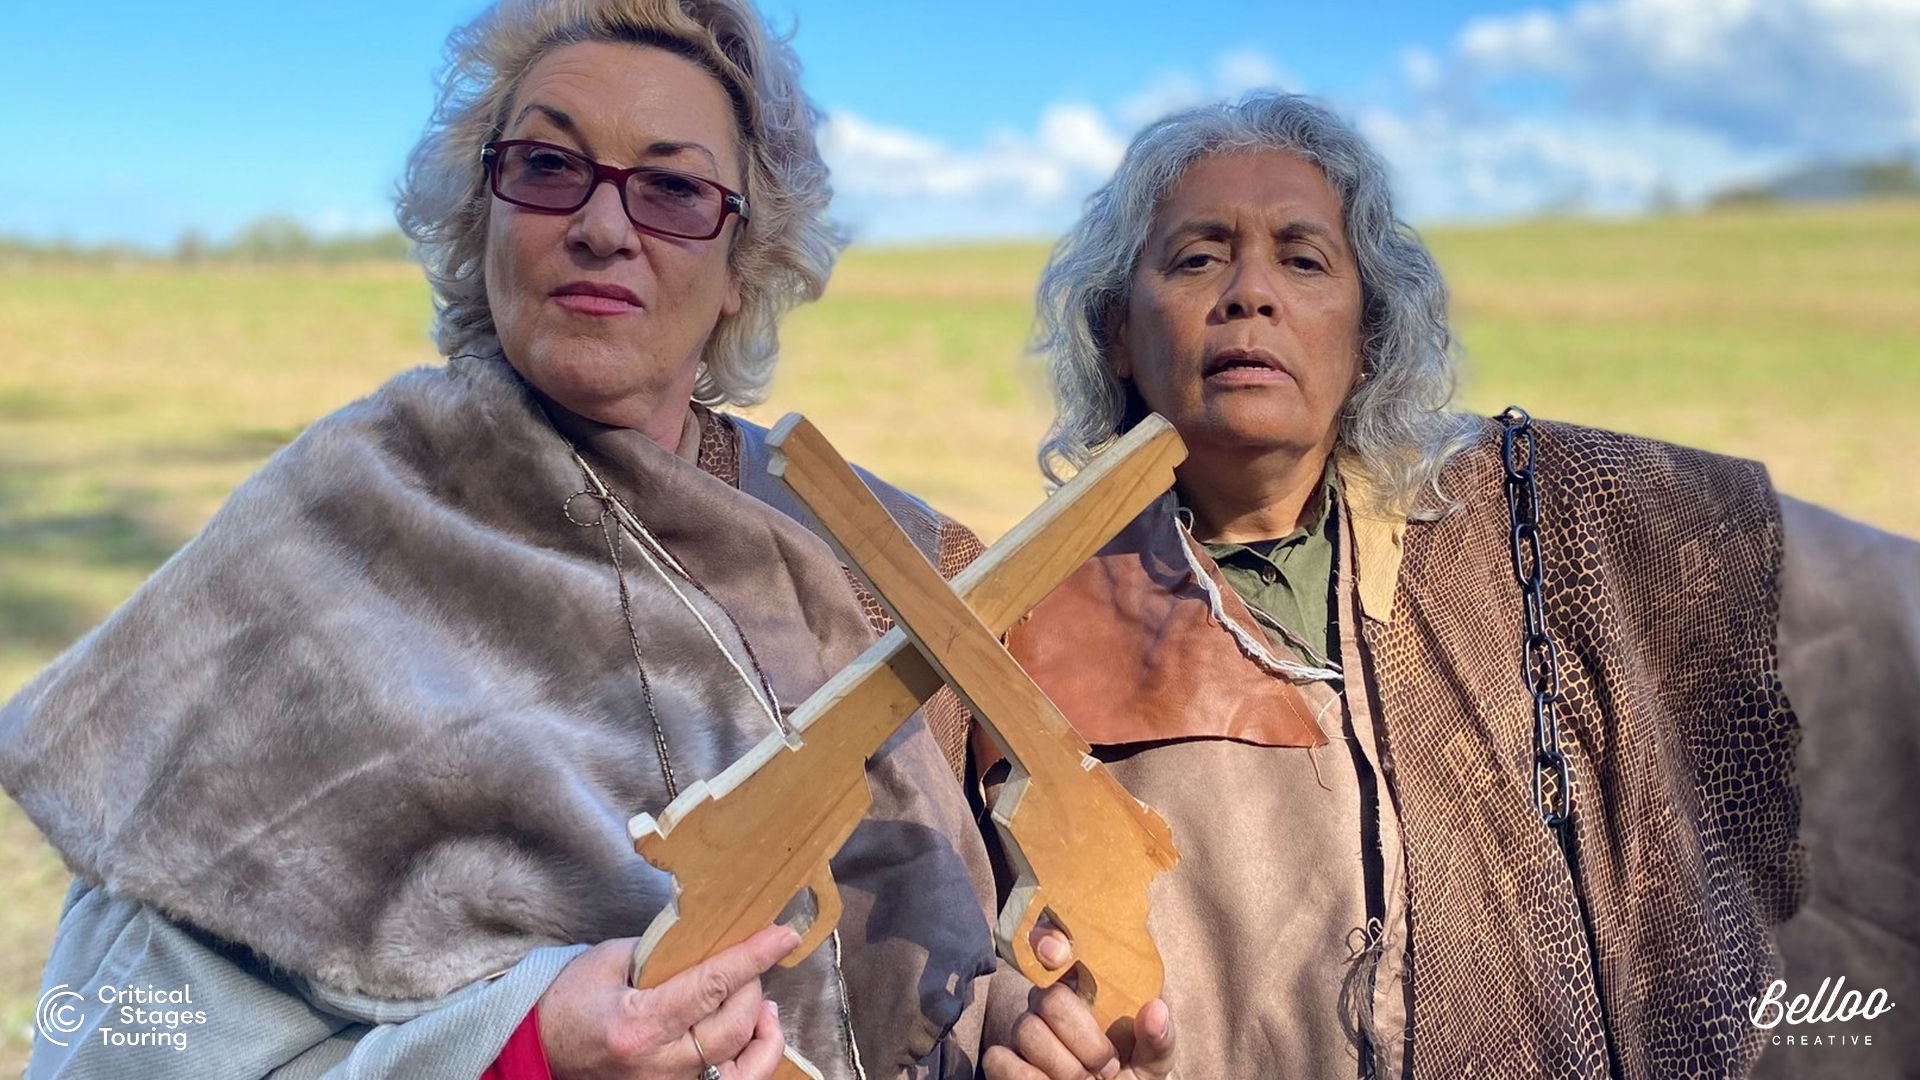 Two women in their mid-50's wear fur shawls and hold timber cut-outs of pistols across themselves. They look determined and brave.